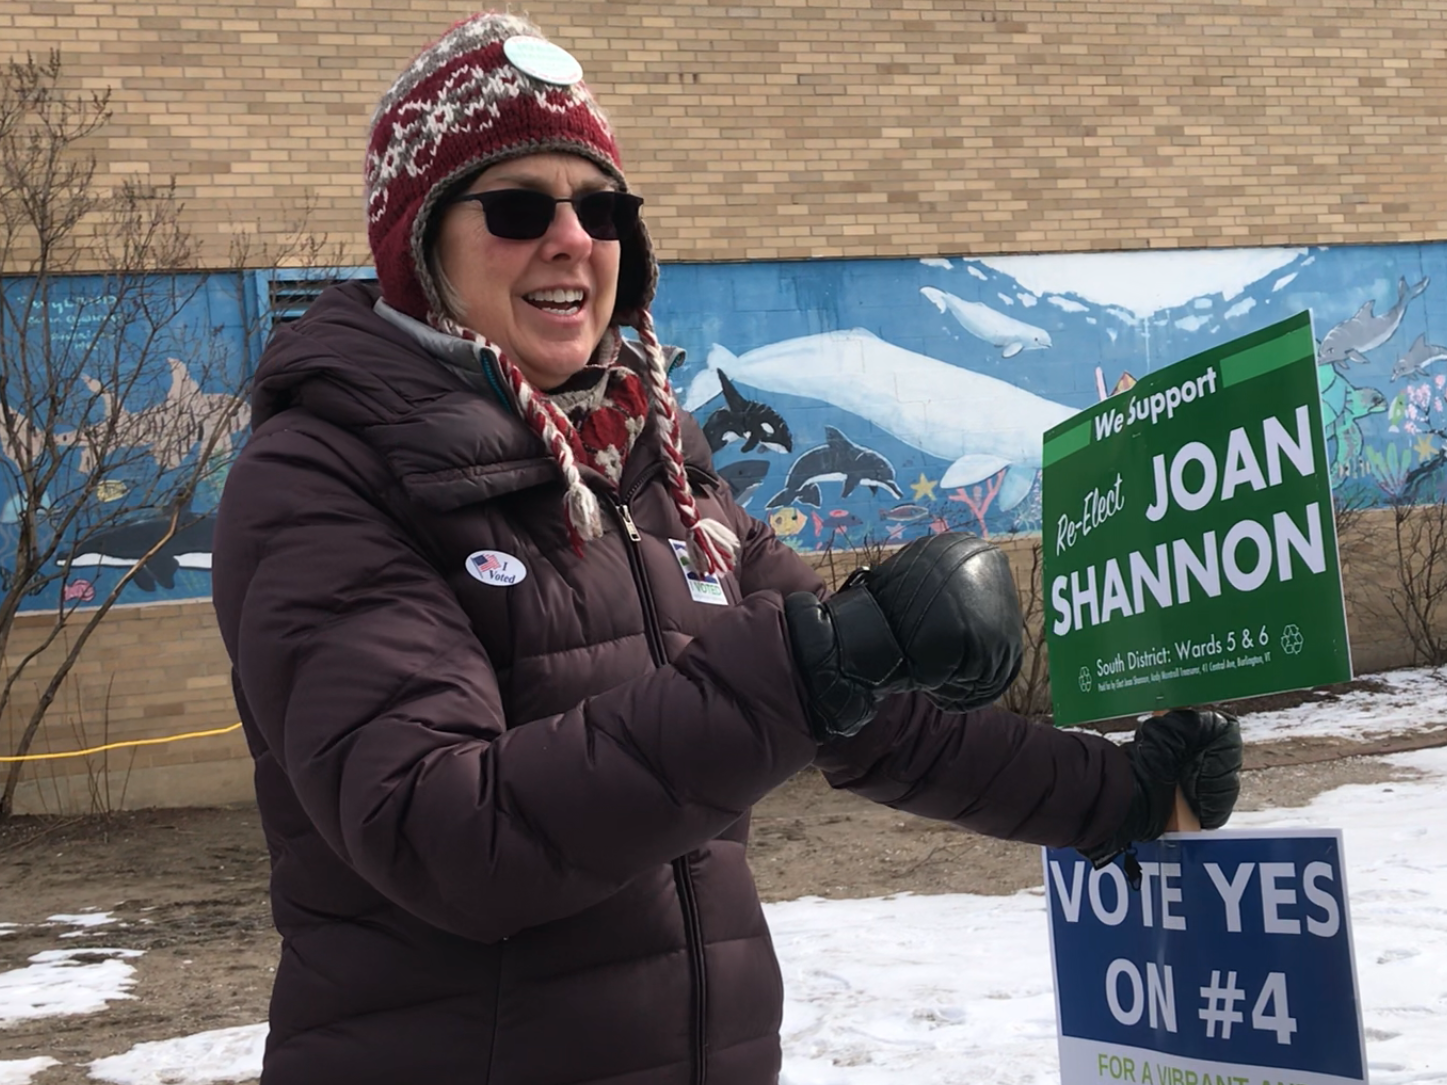 Joan Shannon, Burlington City Councilor for the South District, speaks with a voter outside the polls at Edmunds Elementary School on Tuesday, March 5, 2019.